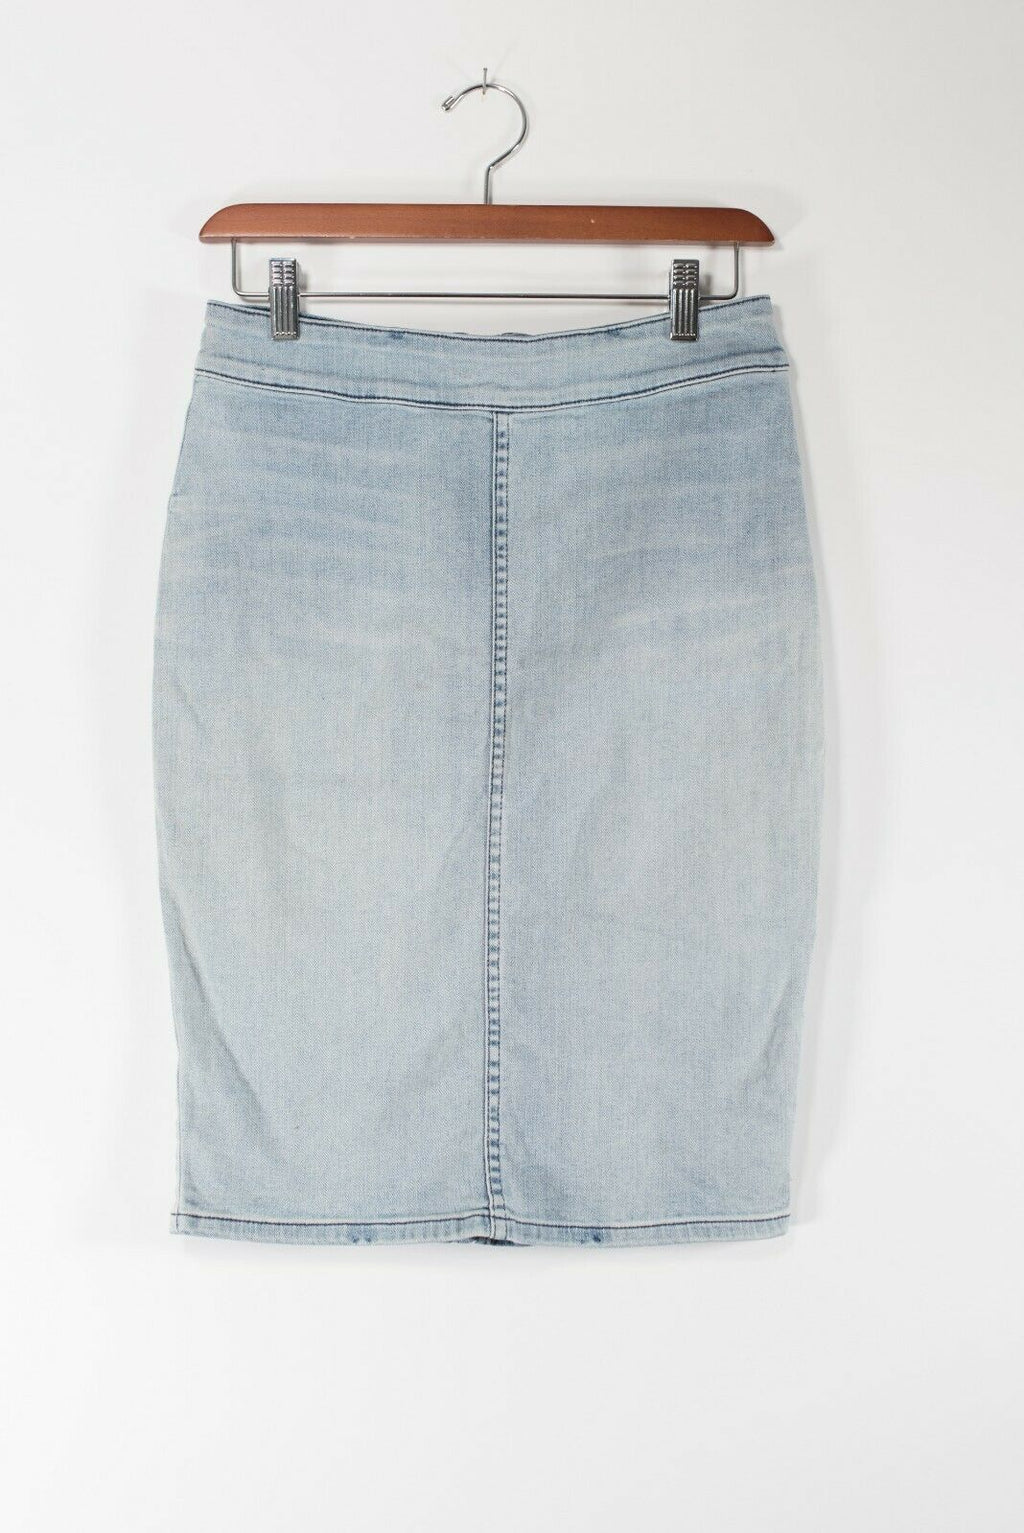 Aritzia The Casting Womens Size 6 Light Blue Denim Skirt High Waisted